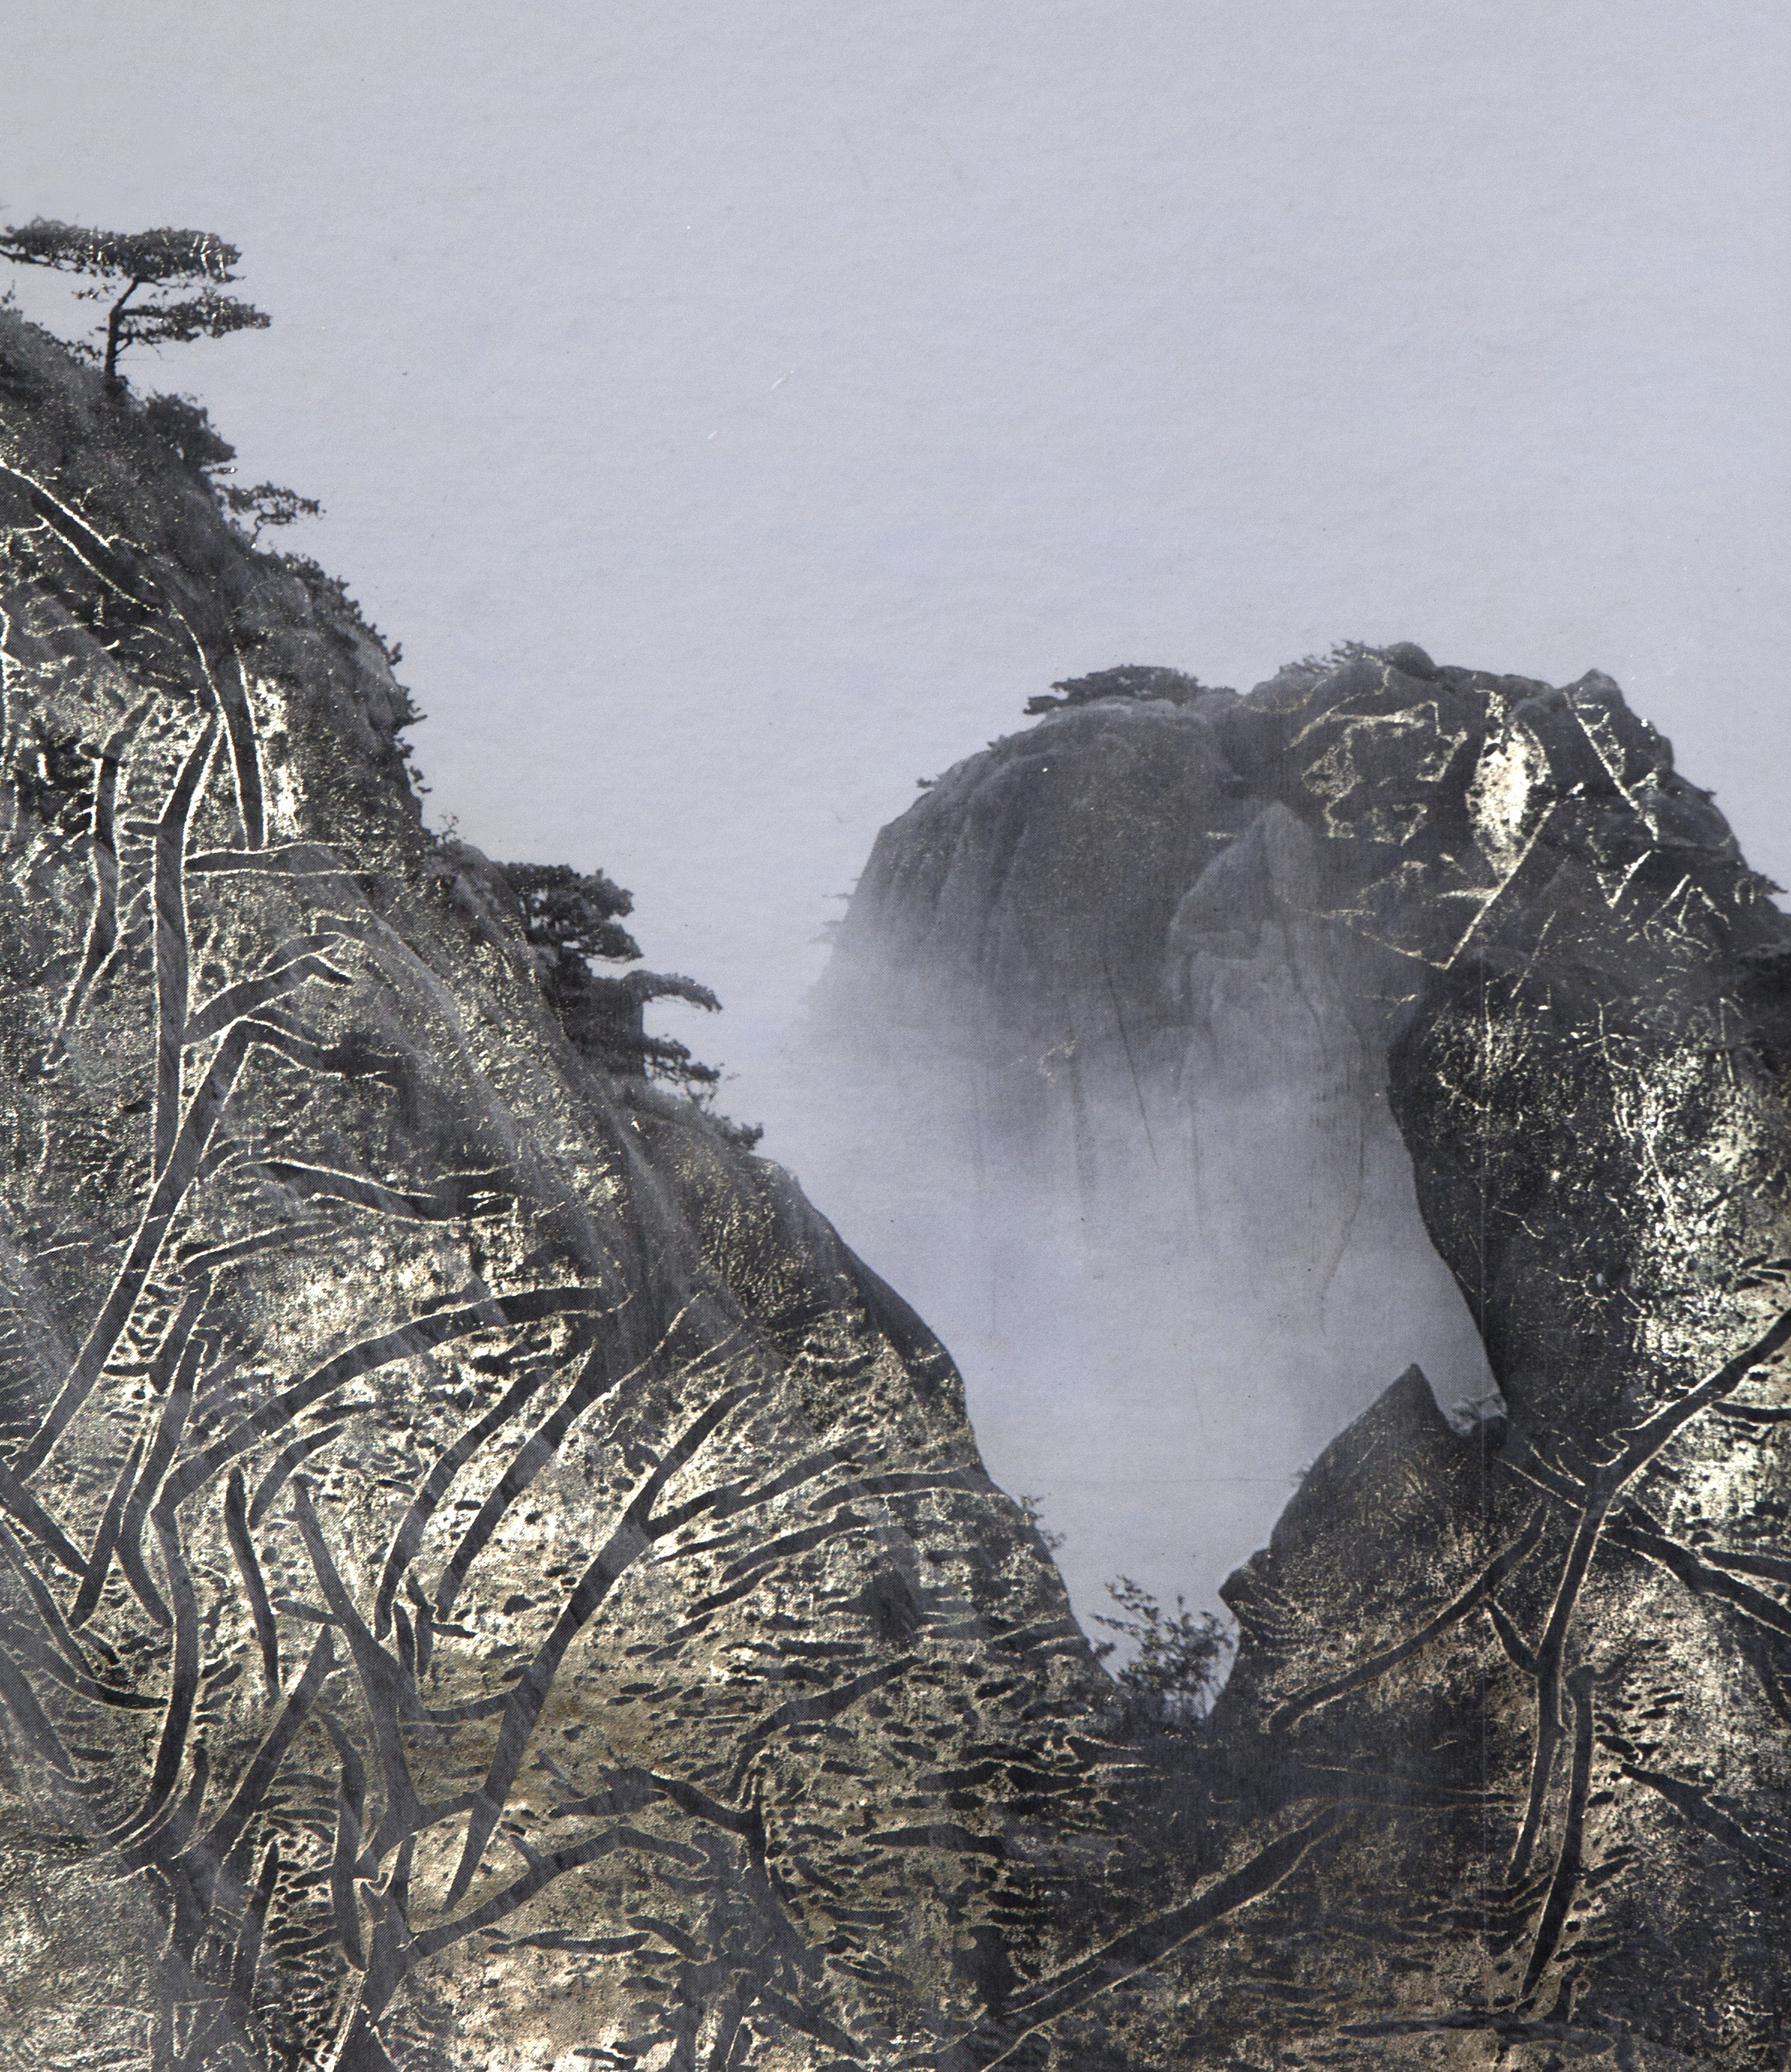 Huangshan Gorge (section)